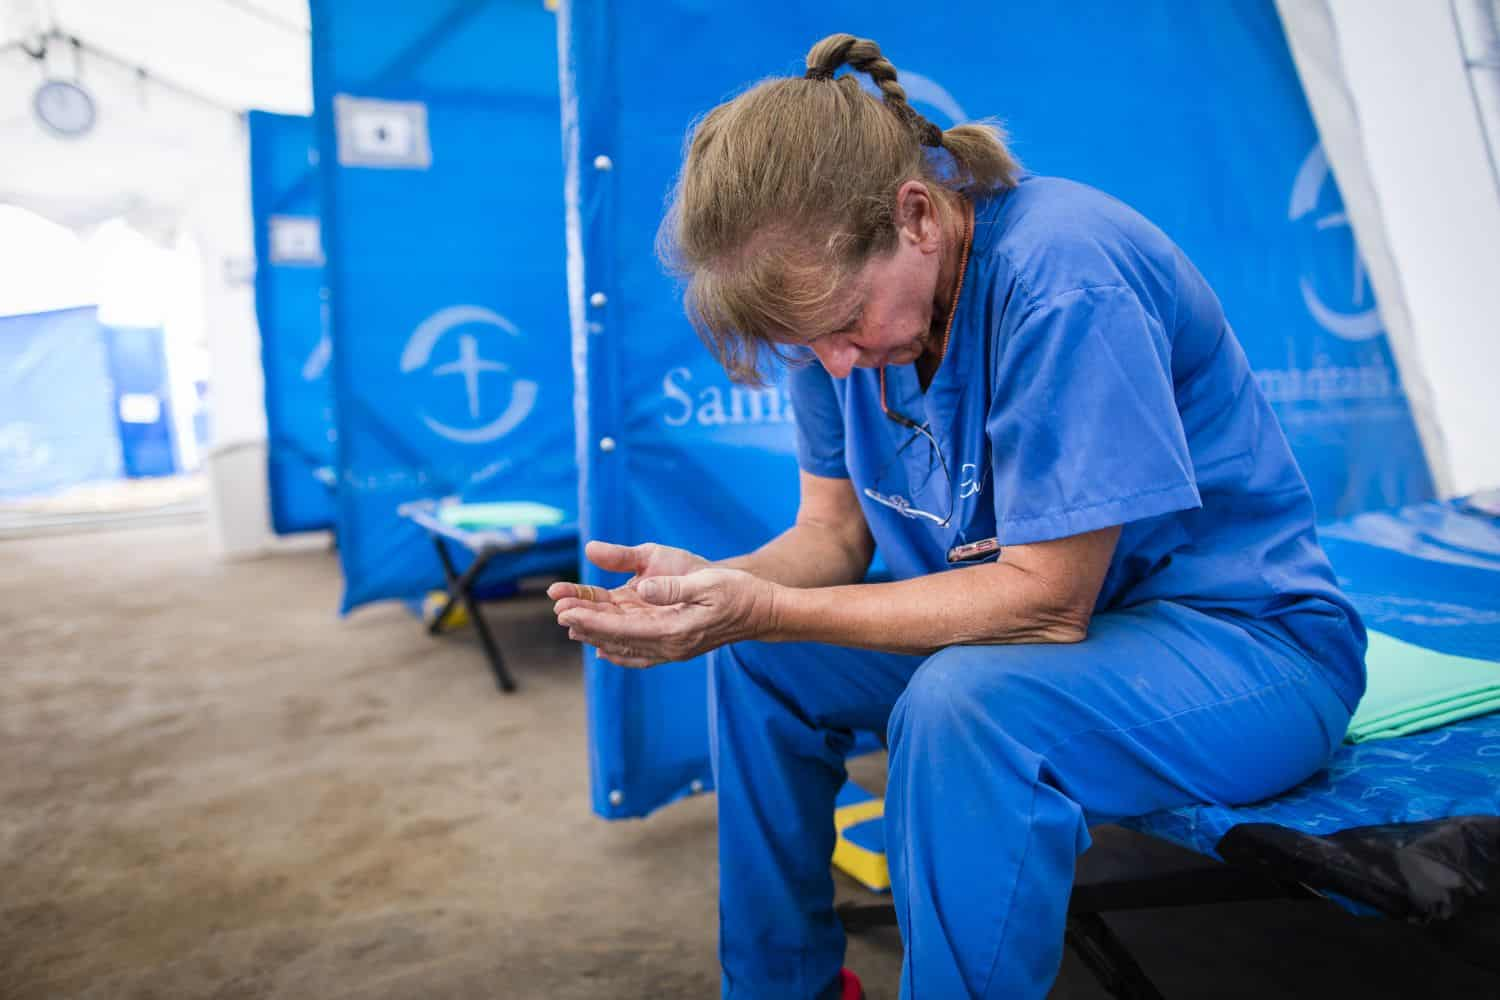 Nurse Regina Randolph spends time praying for the patients who will come to our treatment center.